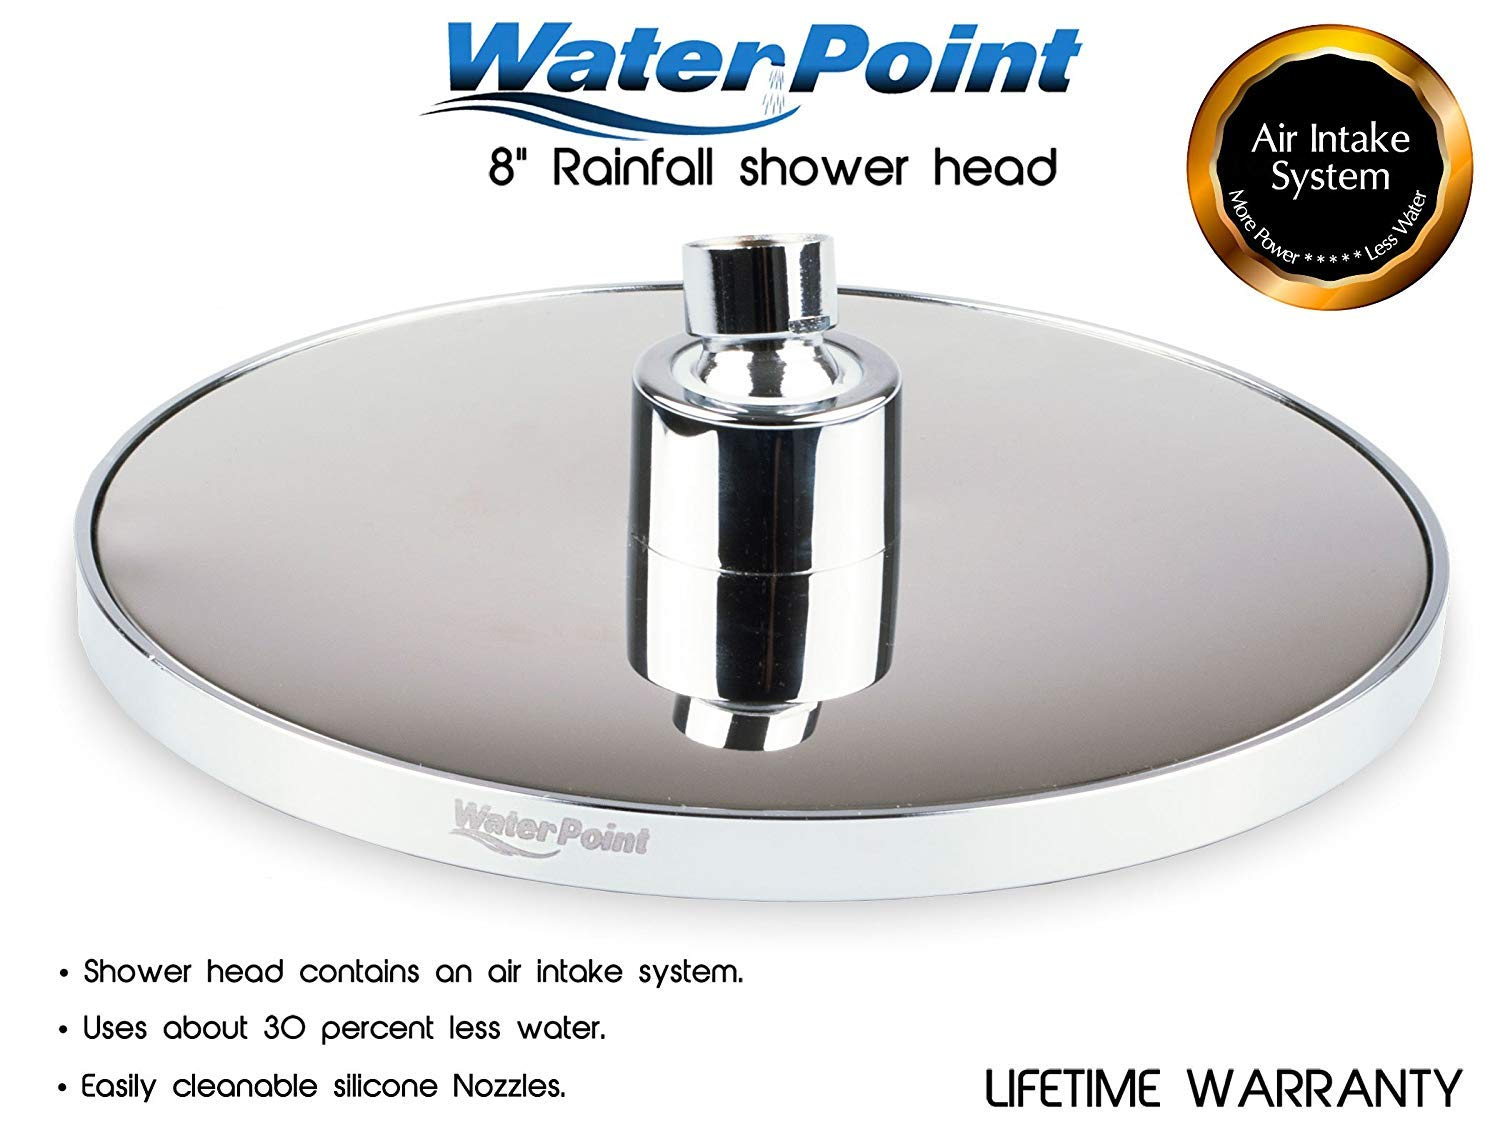 8 Inch Rain Shower Head by WaterPoint, Best High Pressure Rainfall Showerhead with Brass Swivel Ball, Polished Chrome, Uses 30 Less Water